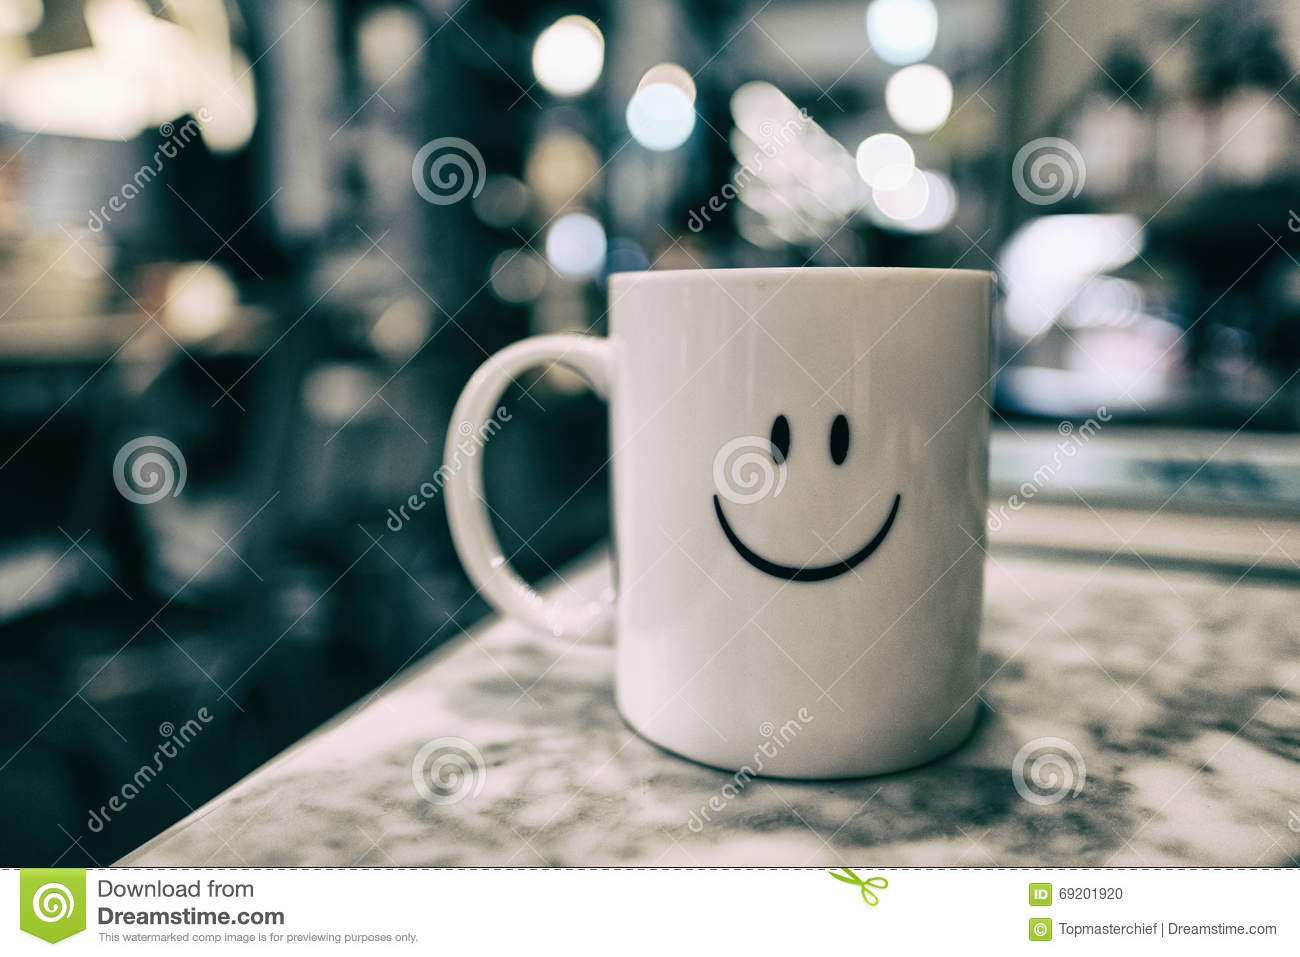 smiley face vase of a mug with smiley face with beautiful boken and blurred backgrou within download a mug with smiley face with beautiful boken and blurred backgrou stock photo image